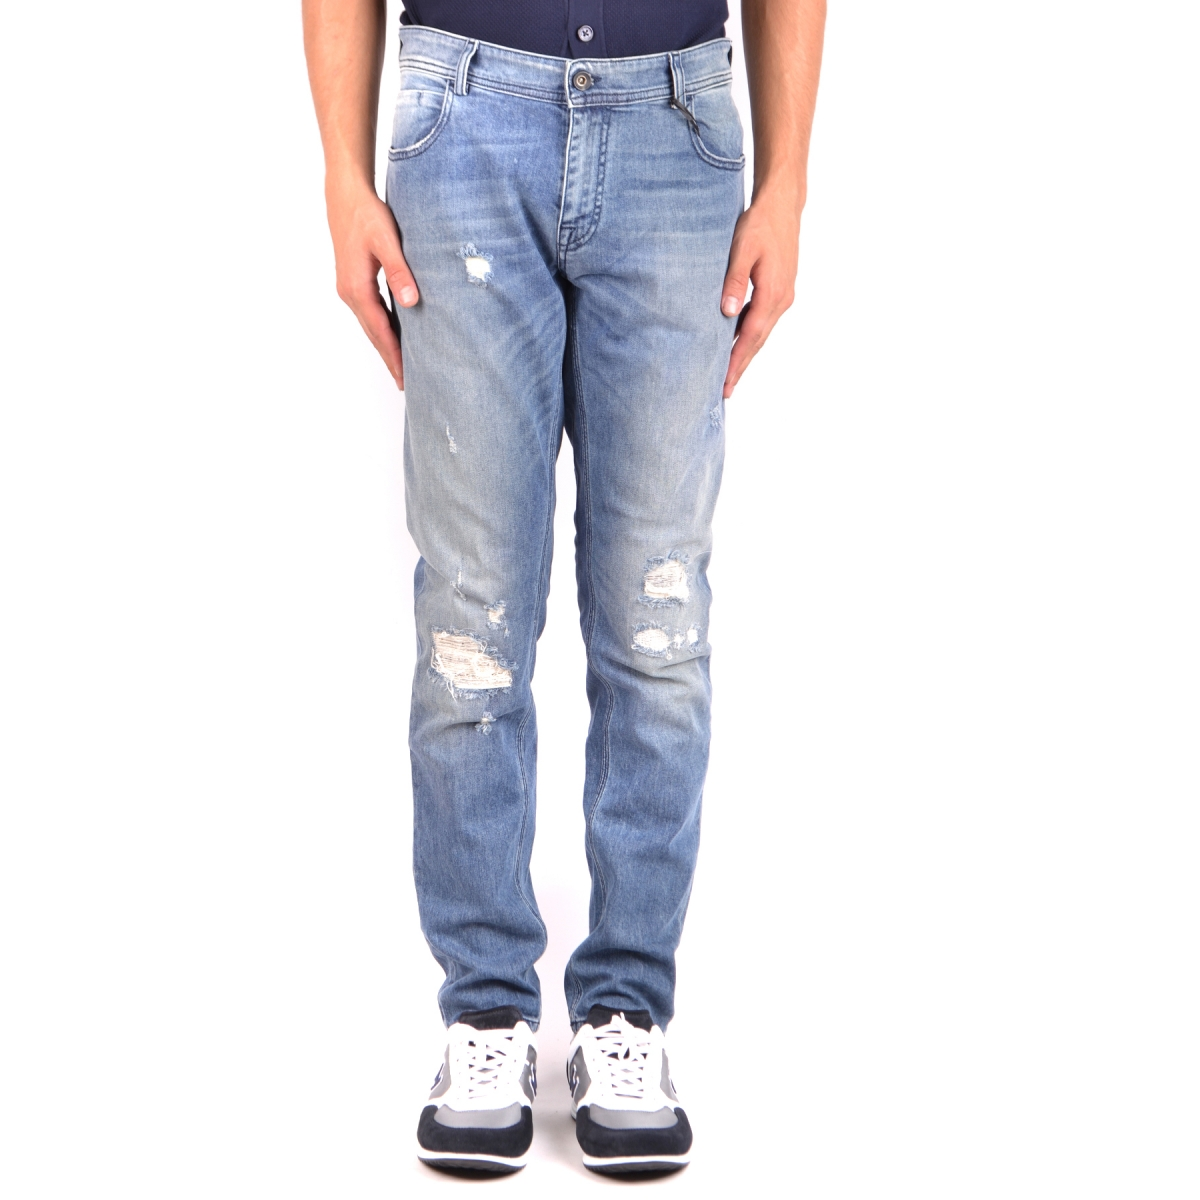 info for b2621 e62cd Jeans Paolo Pecora 35392ES -30% limit buy